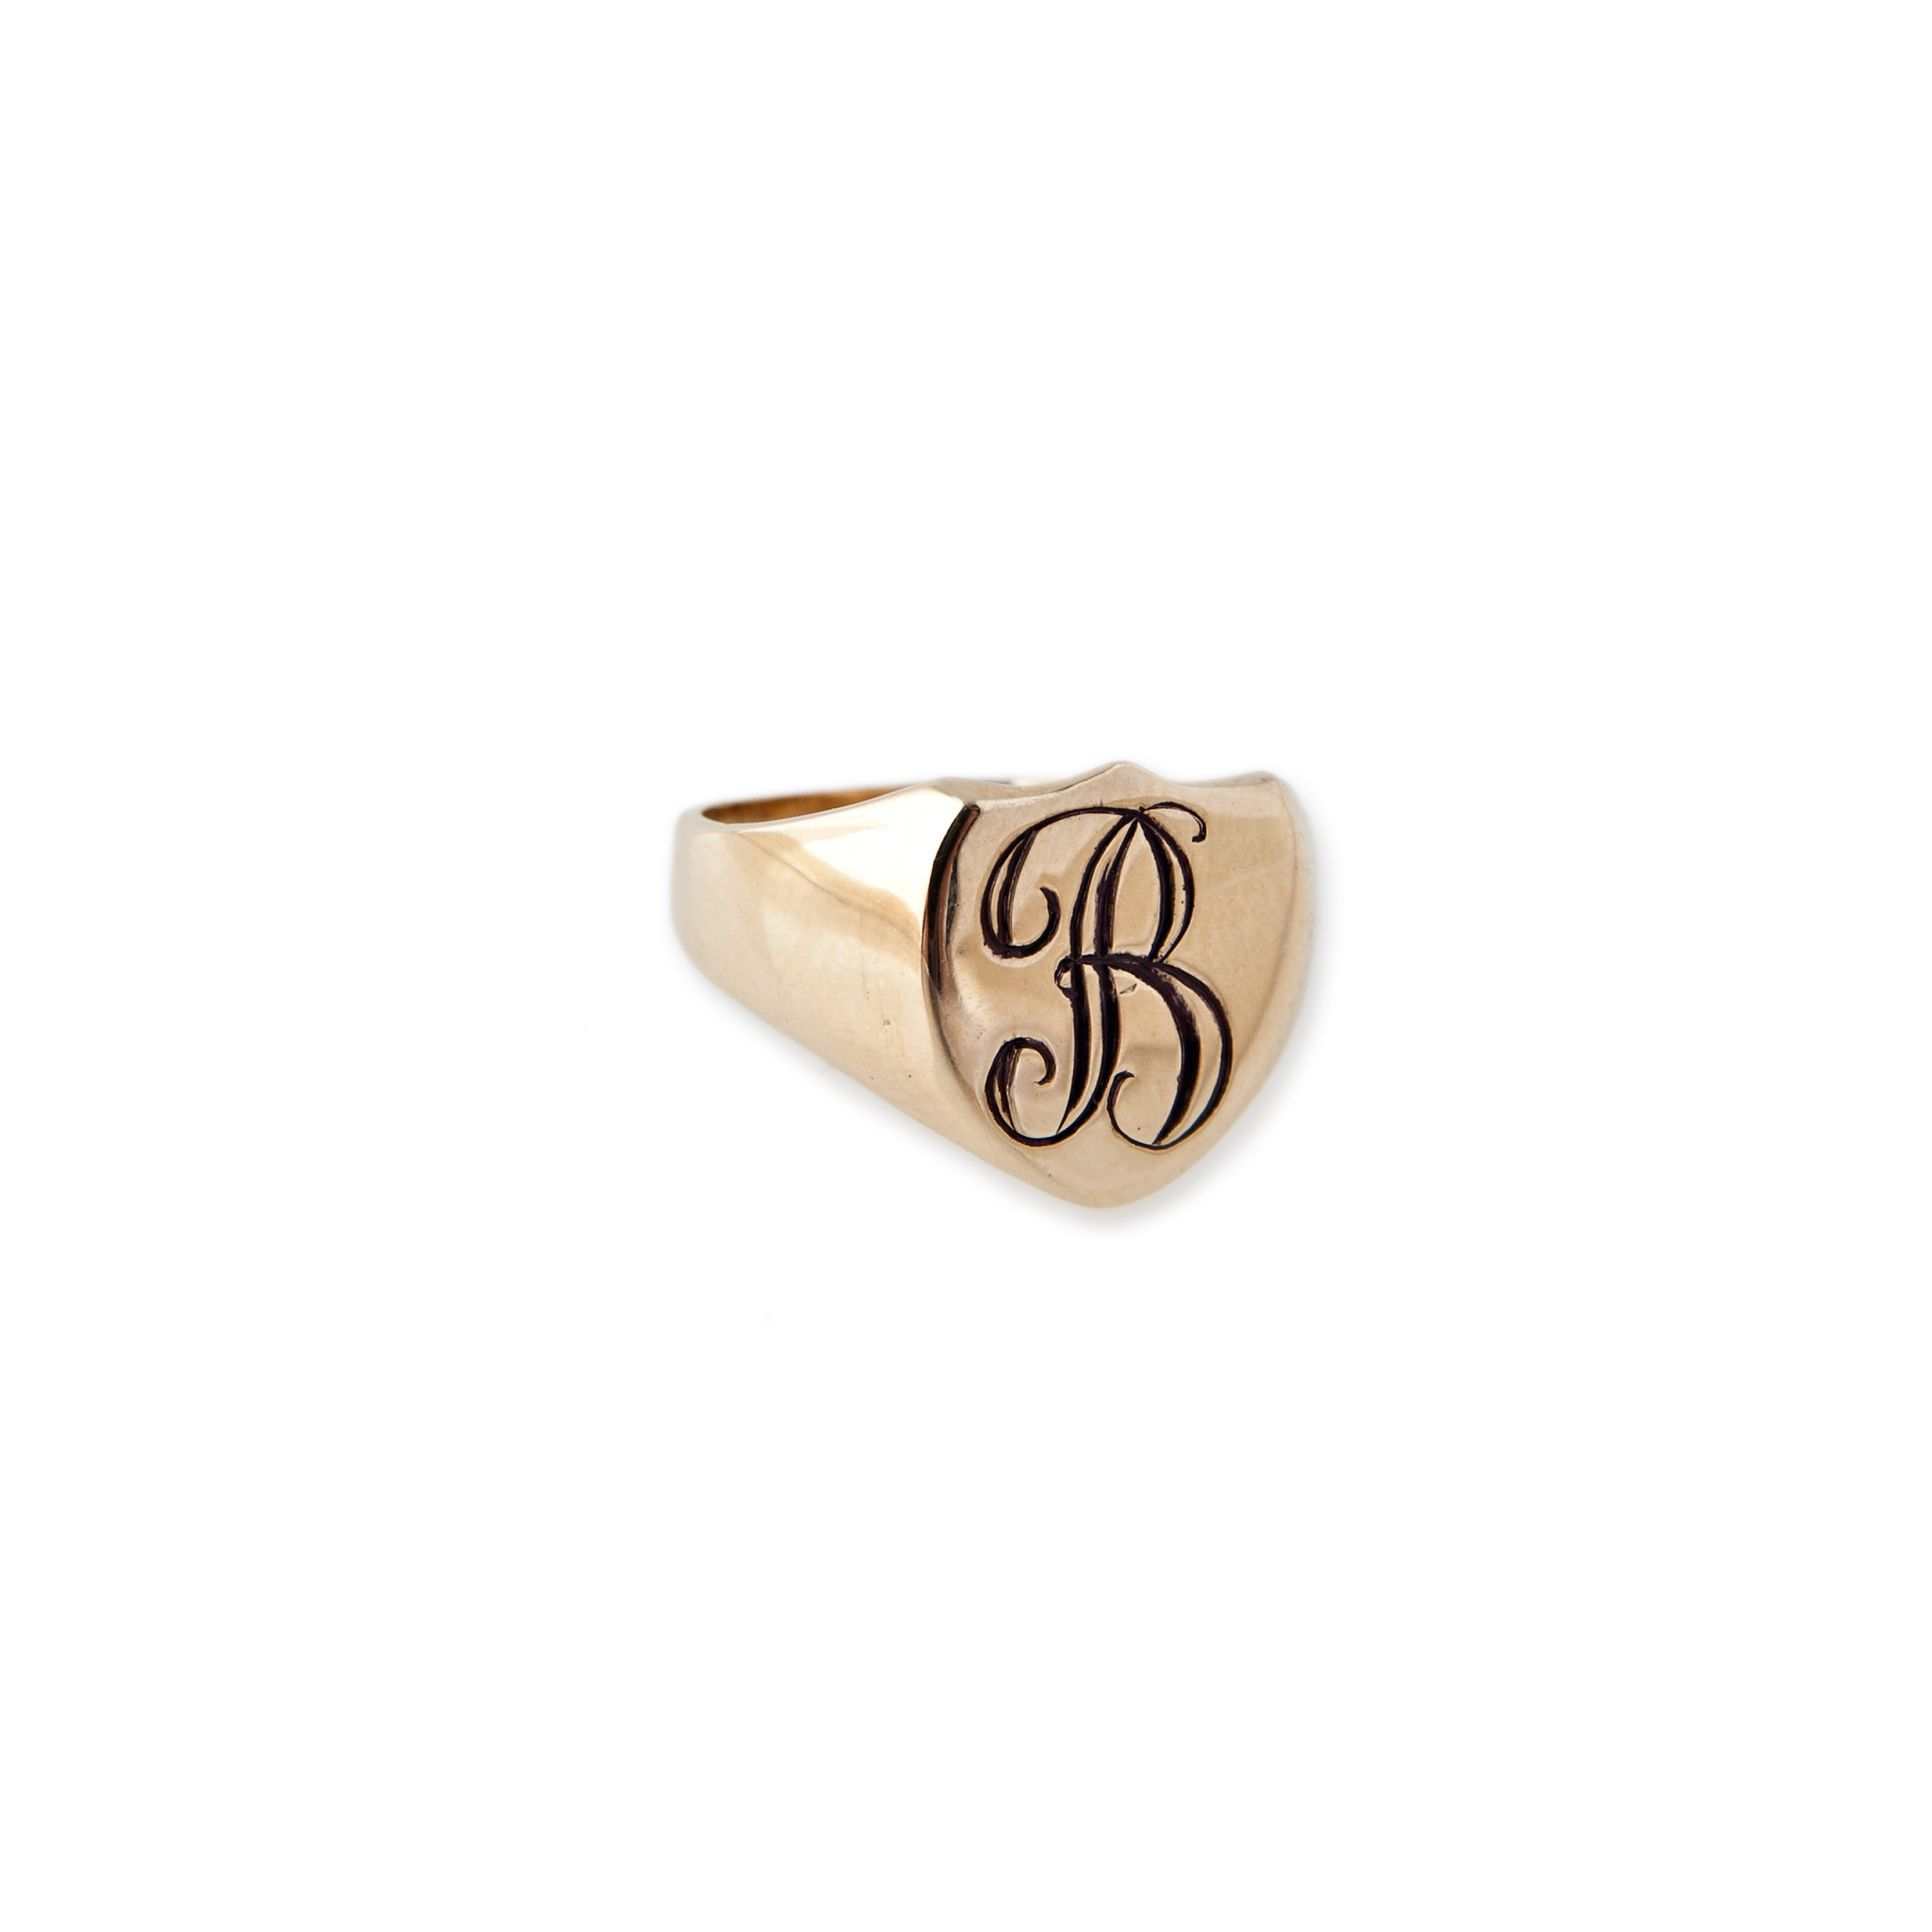 Image of SHIELD INITIAL SIGNET RING